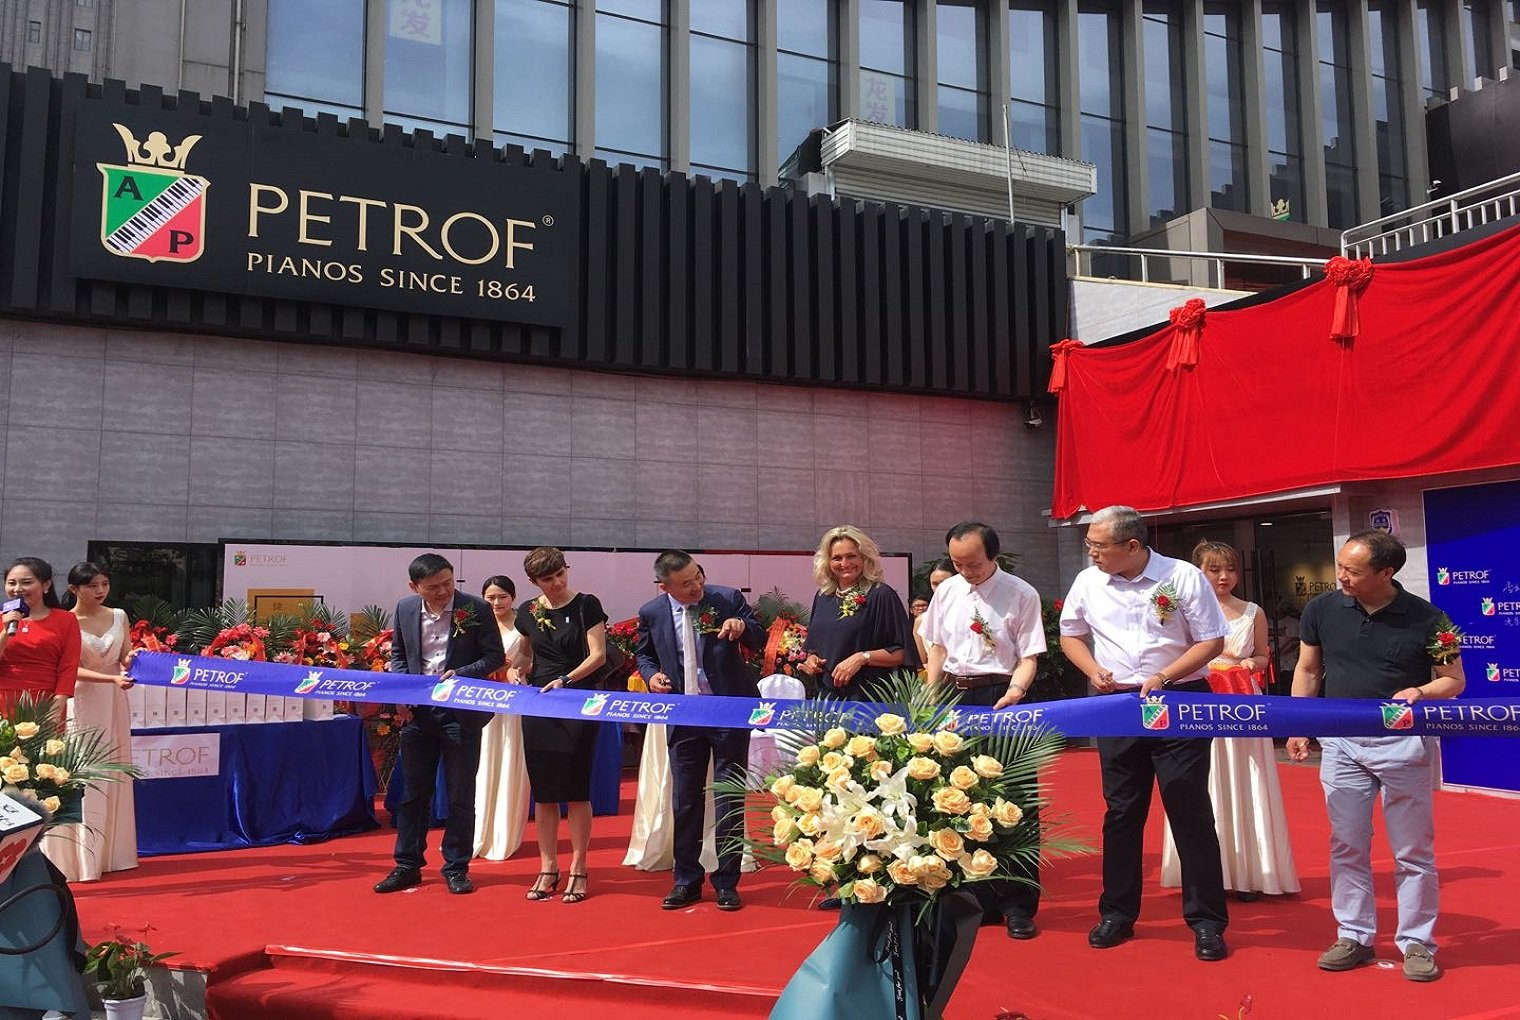 PETROF Gallery no.2 grand opening in China